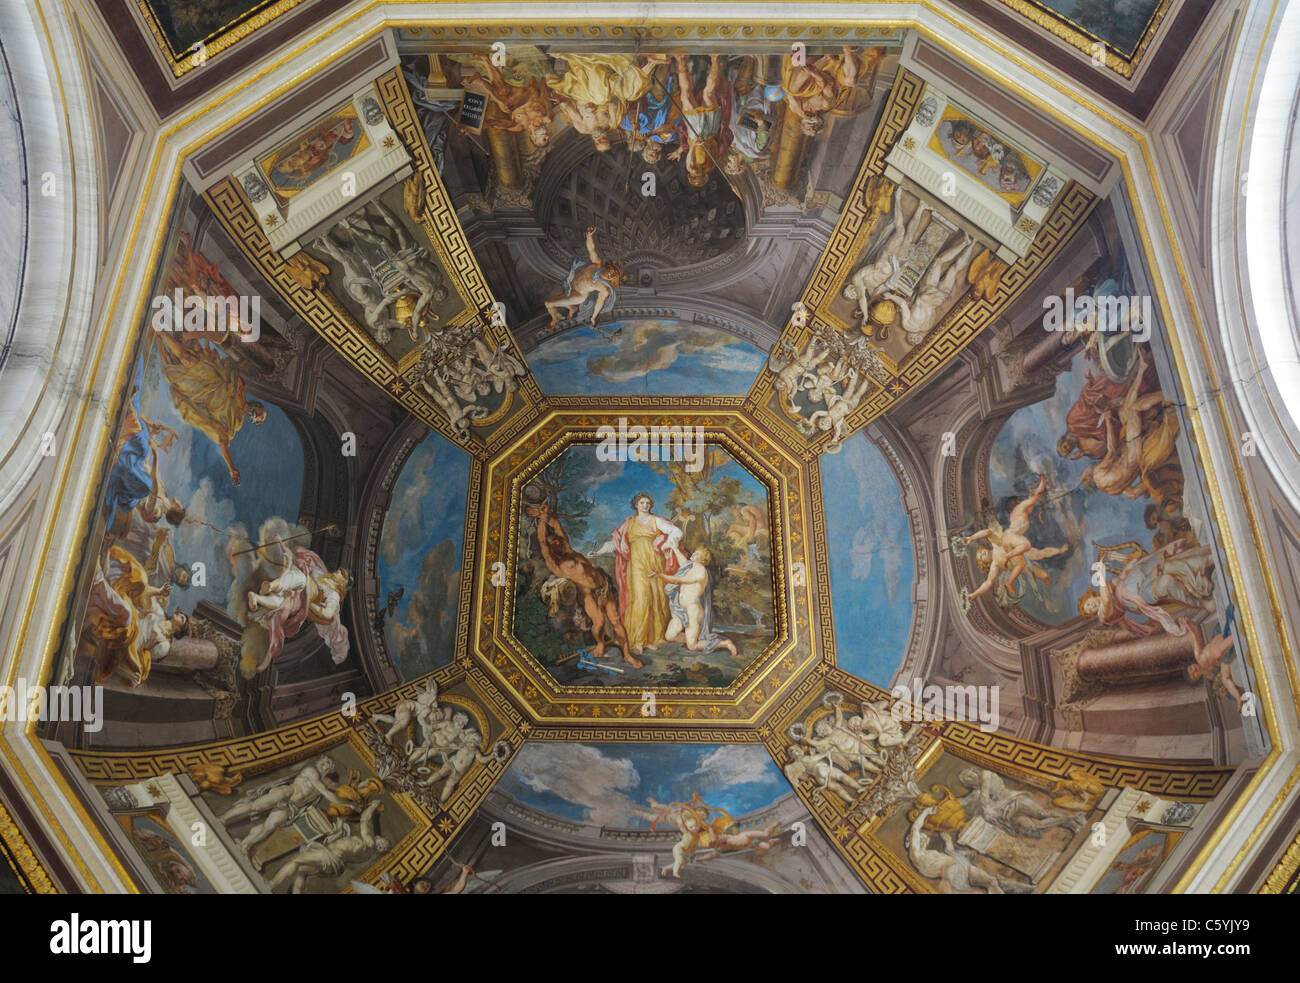 Ceiling painting, Vatican Museum Stock Photo, Royalty Free